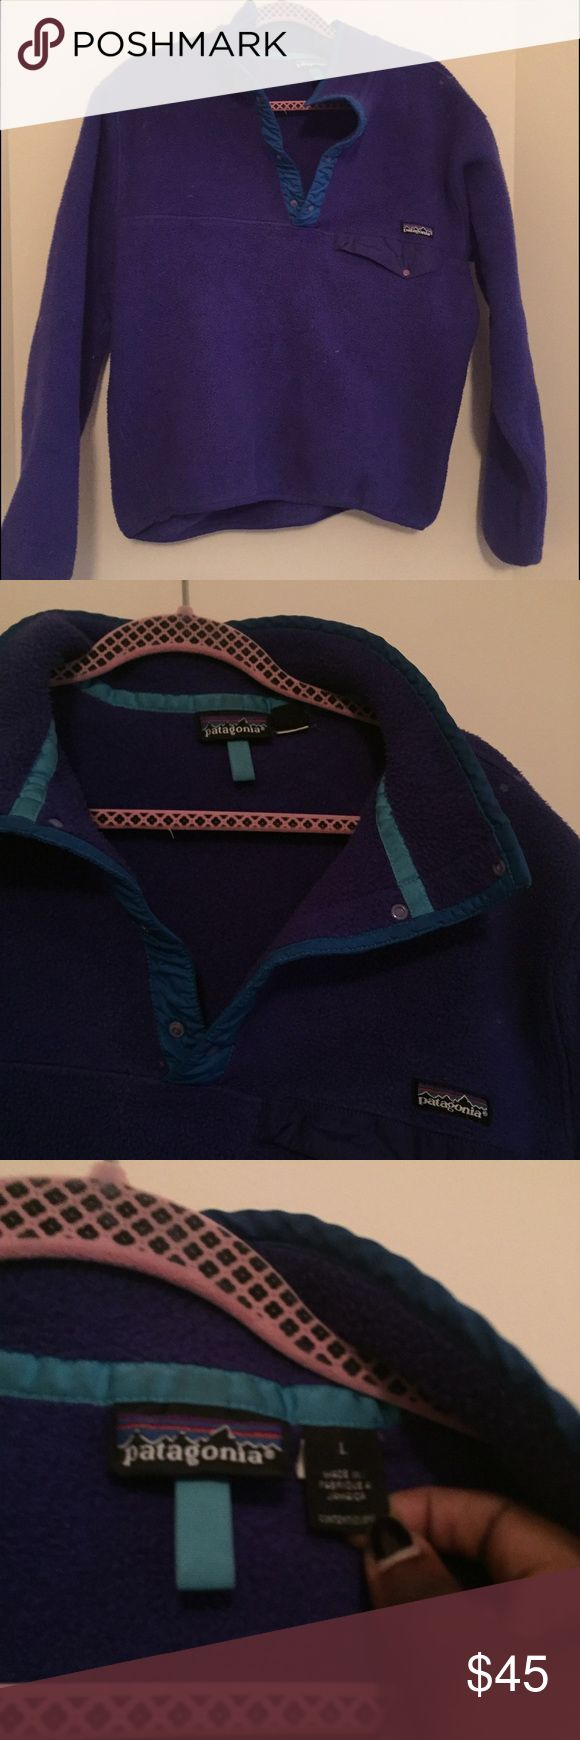 Blue & Purple Patagonia Only slightly used Patagonia Synchilla Jacket. Perfect for keeping warm and fashionable this winter! Patagonia Jackets & Coats